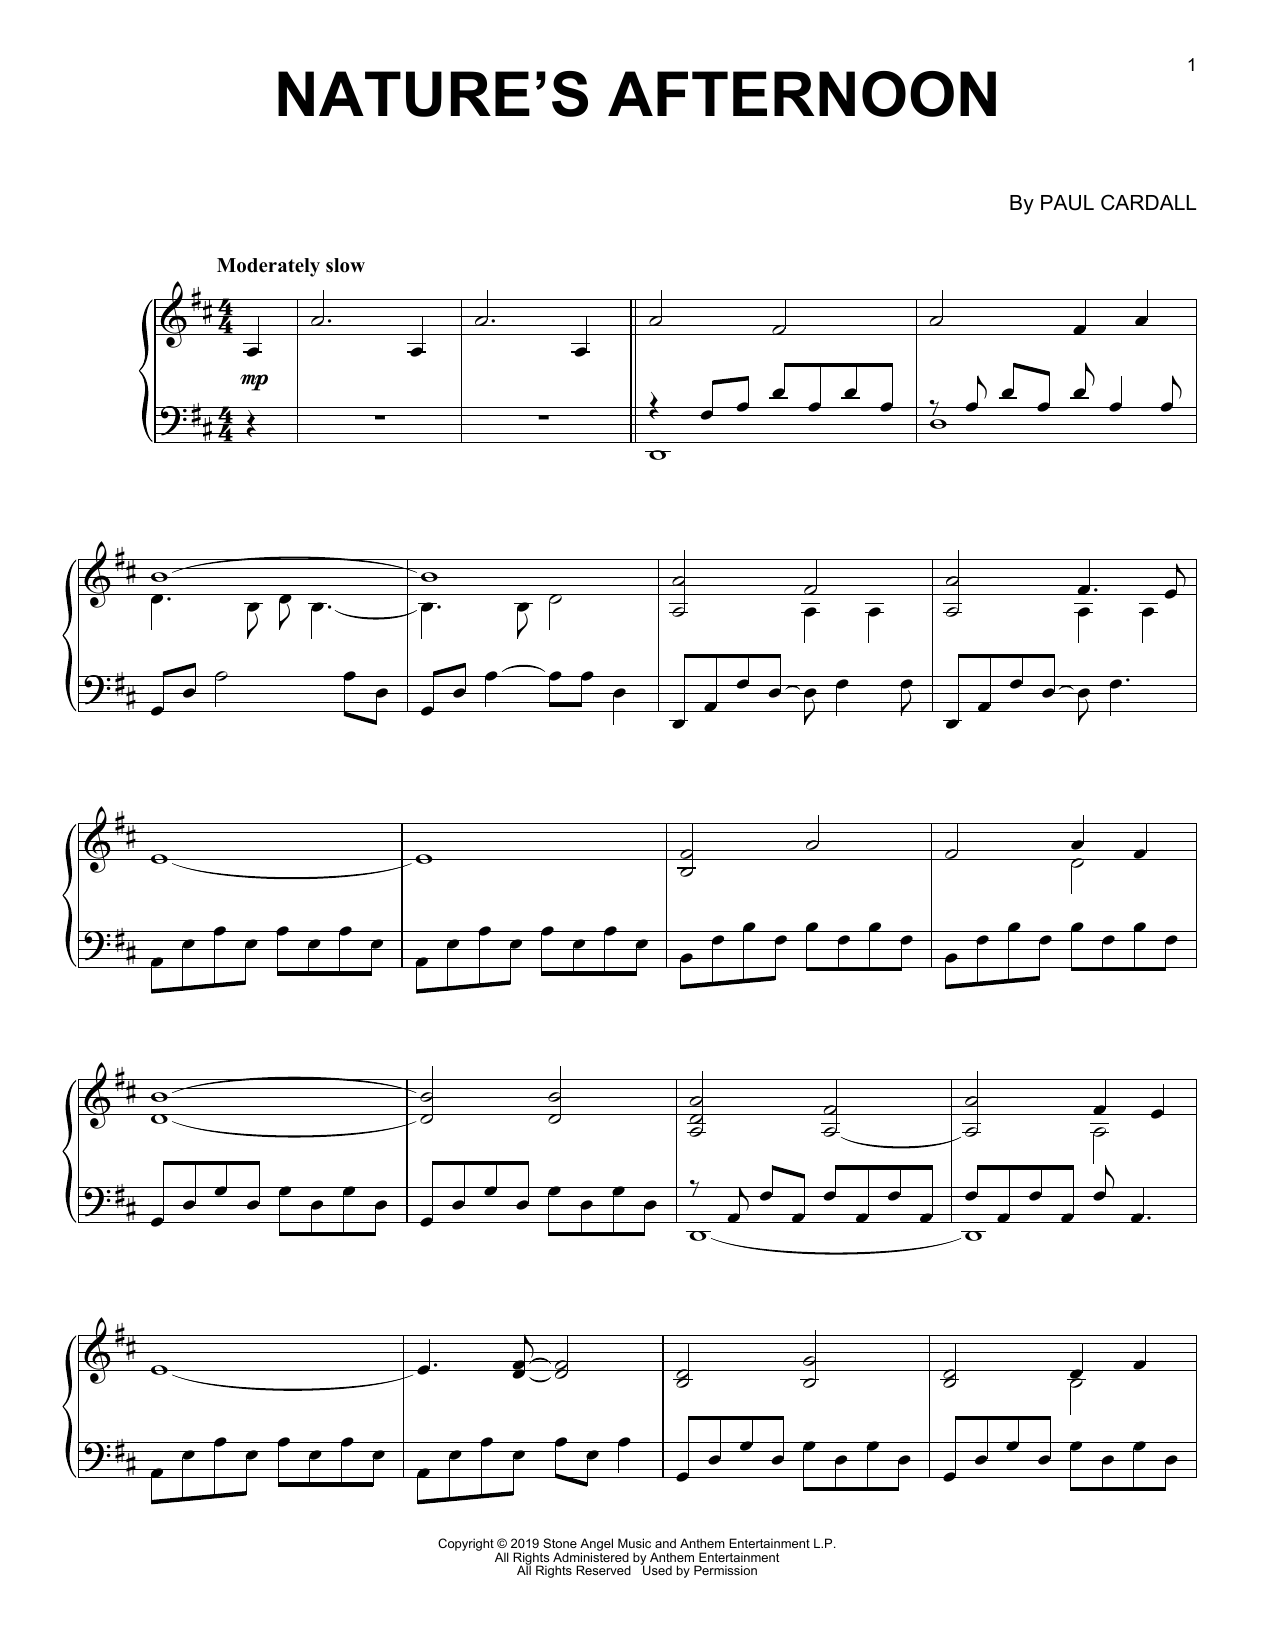 Paul Cardall Nature's Afternoon sheet music notes and chords. Download Printable PDF.